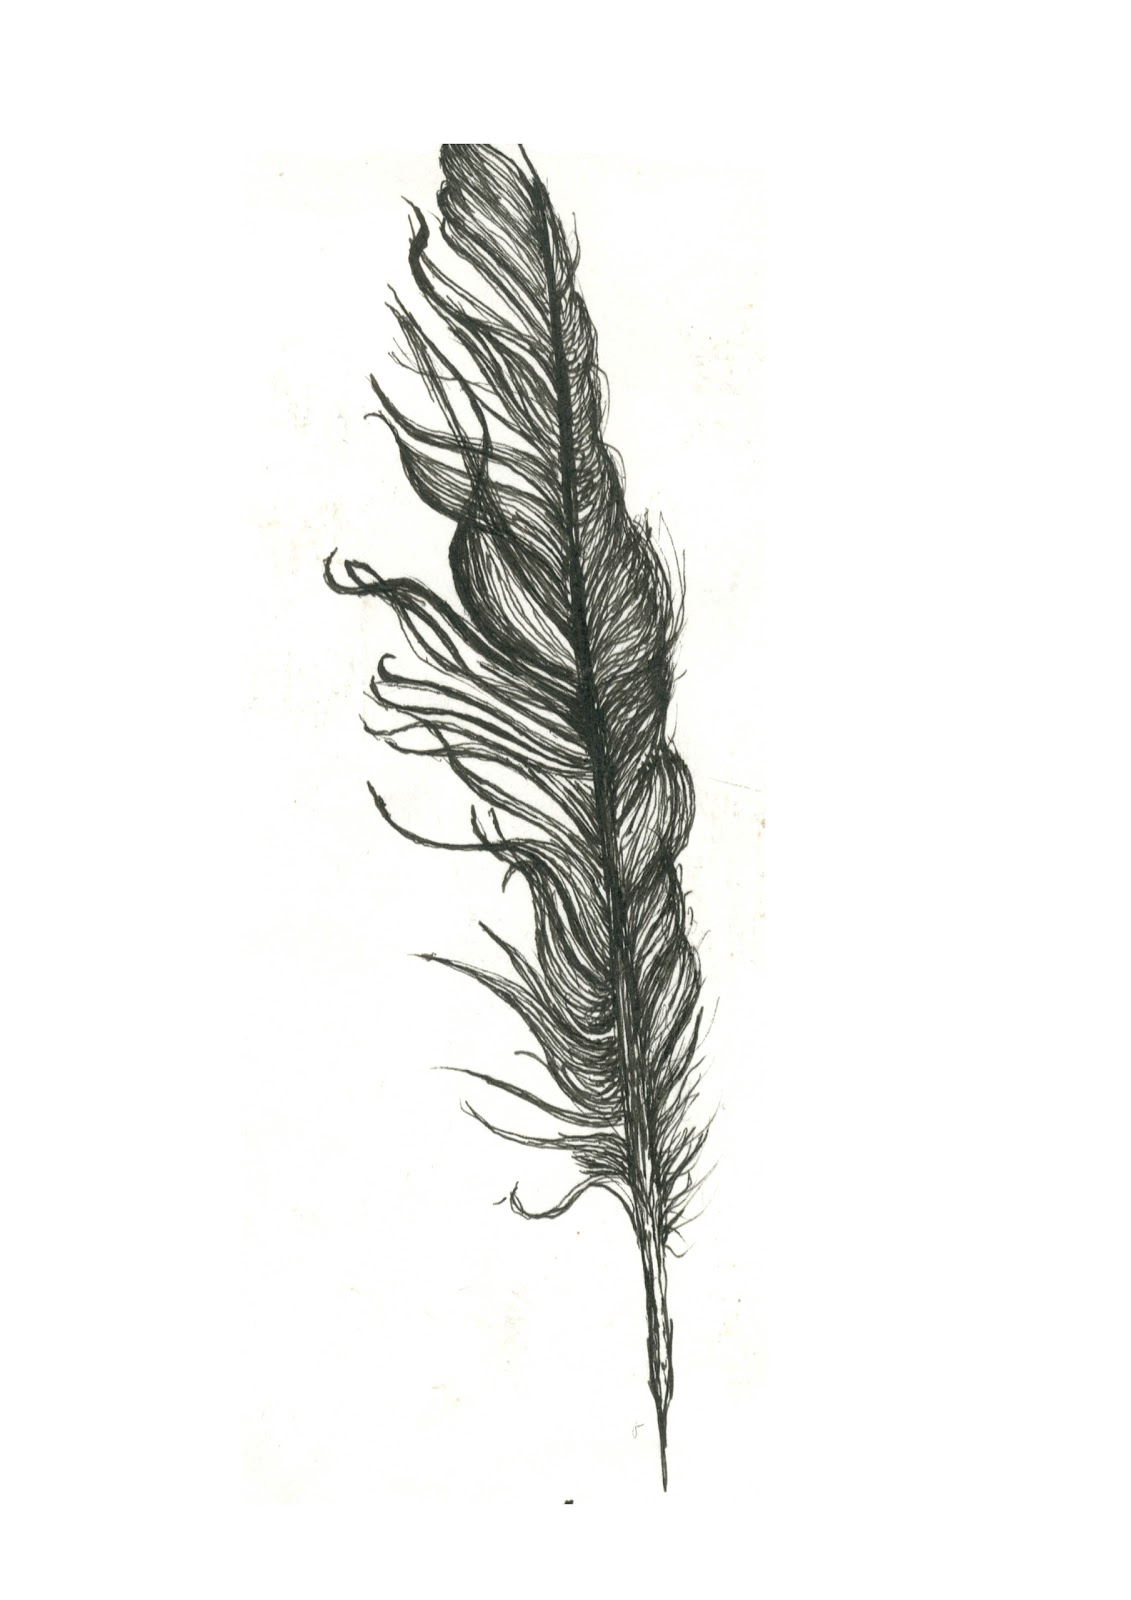 Cathal Ratcliffe Fine Liner And Pencil Drawing Of A Feather